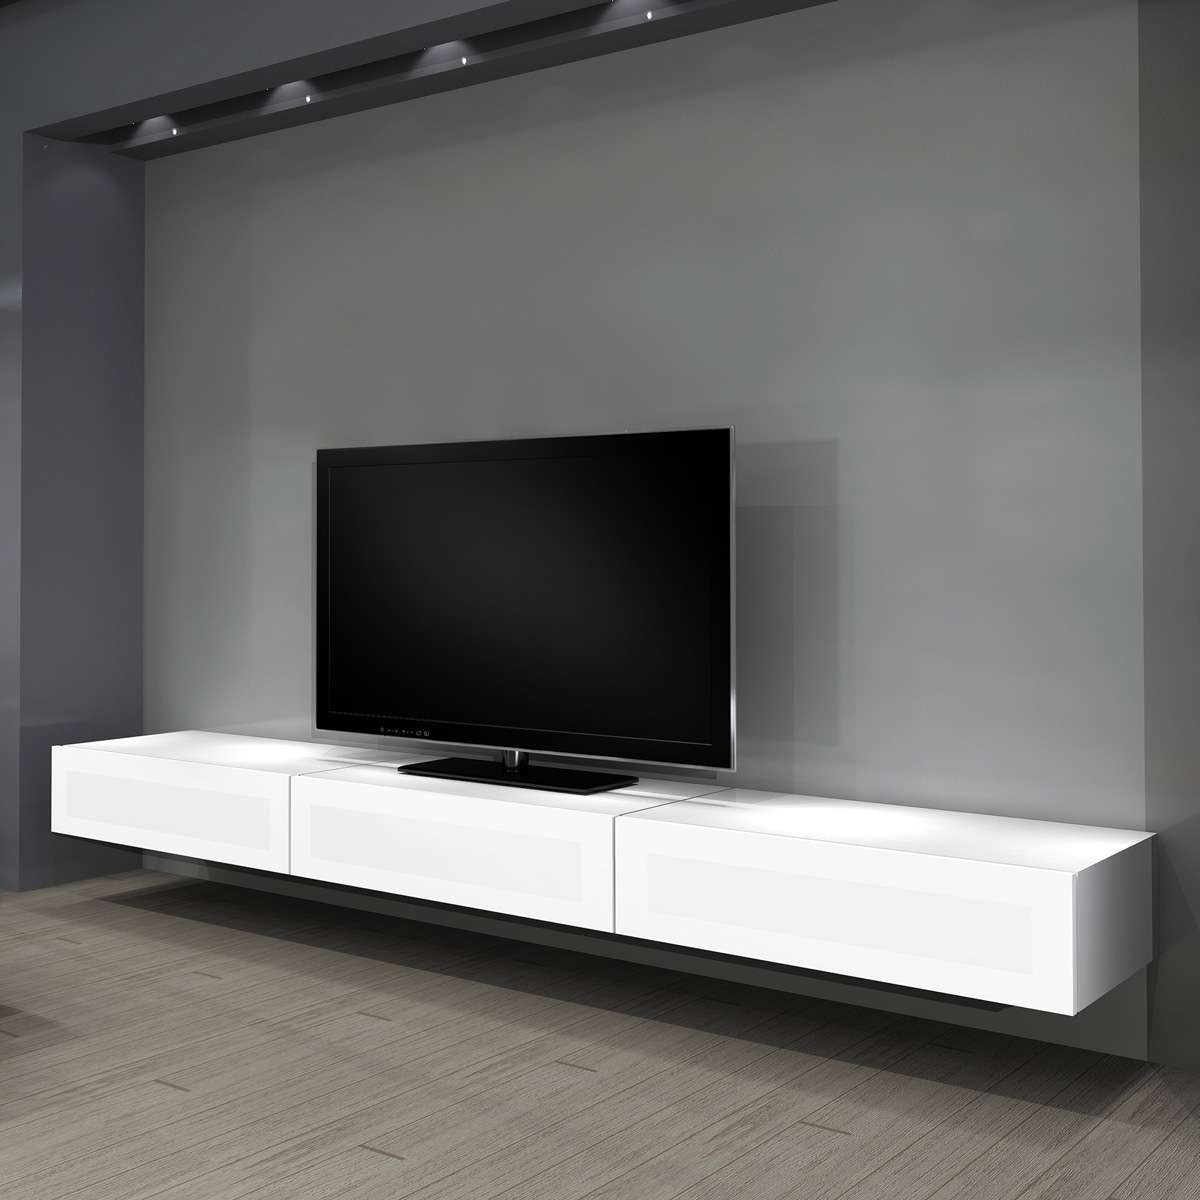 Furniture: White Floated Ikea Modern Tv Stands With Slim Tv Udner With Regard To Slim Tv Stands (View 6 of 20)